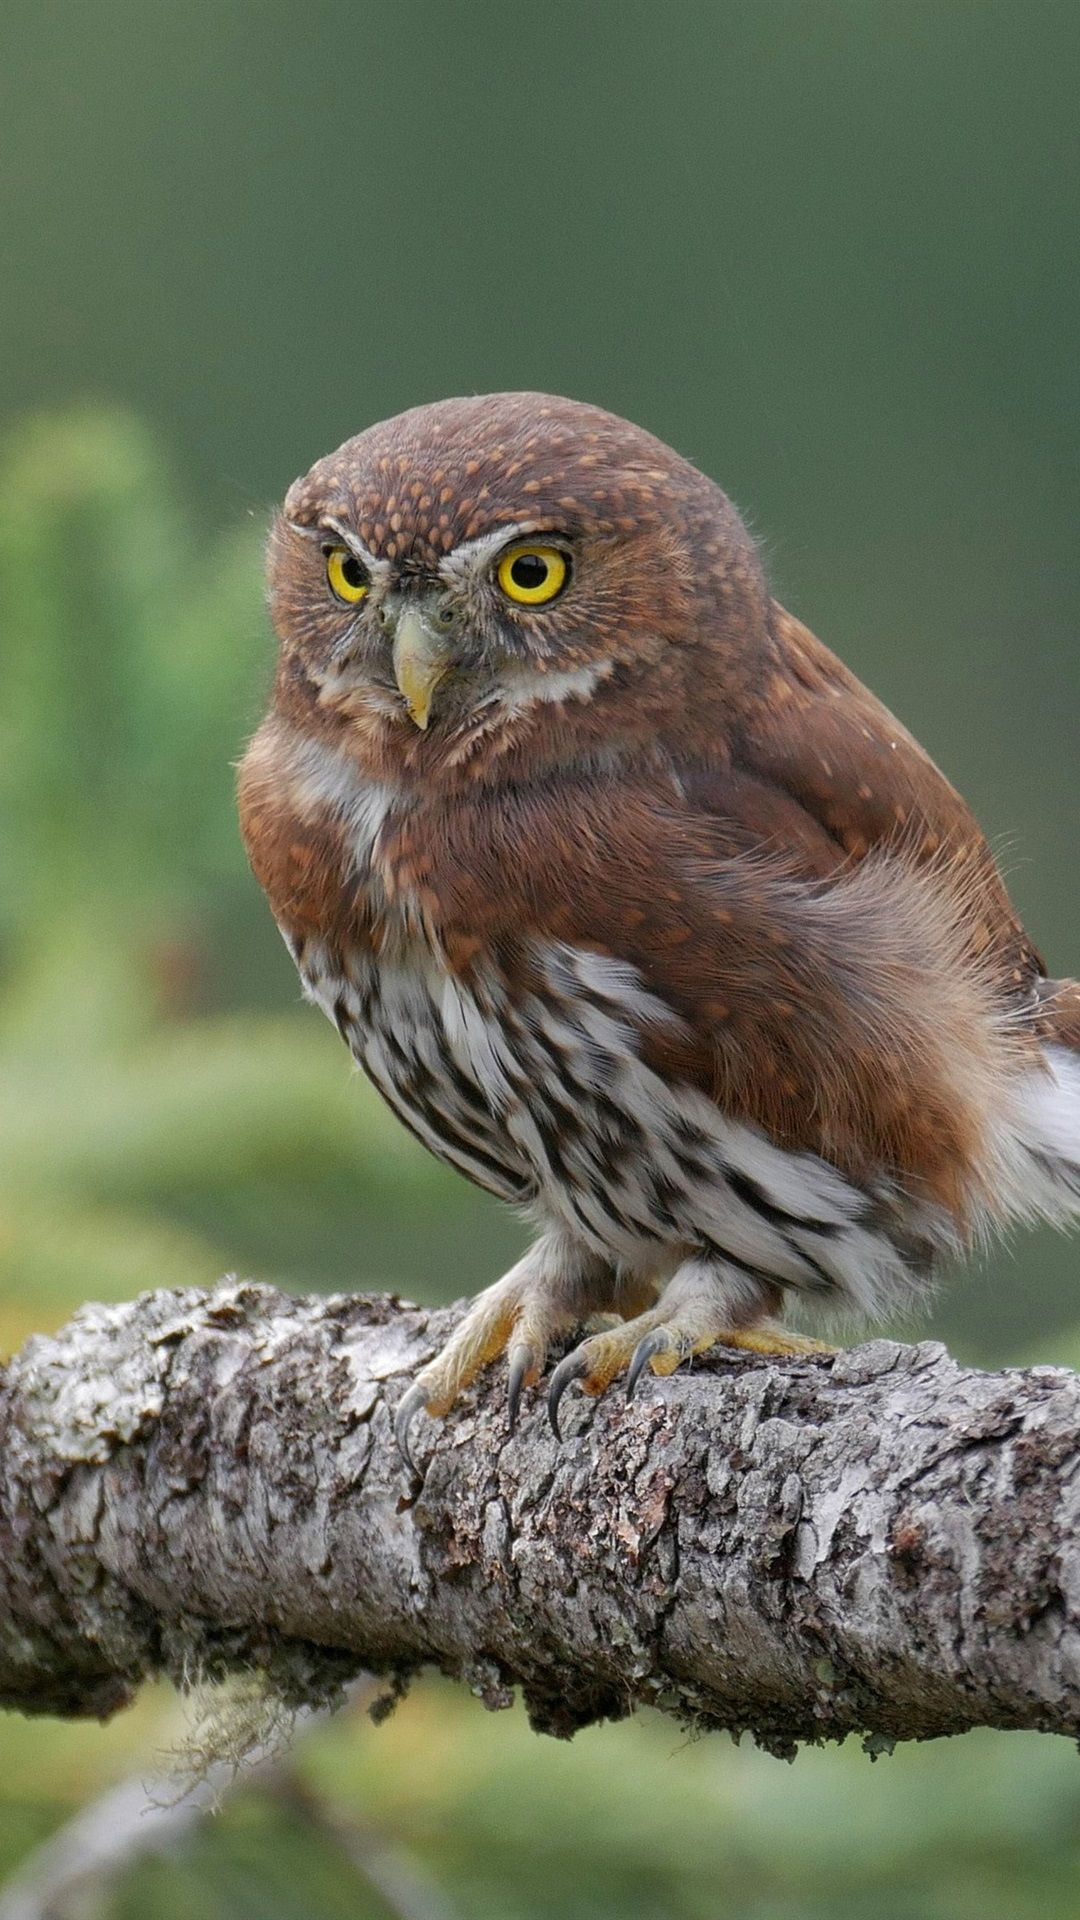 1080x1920 Wallpaper Little owl, yellow eyes, branches 3840x2160 UHD 4K Picture ...